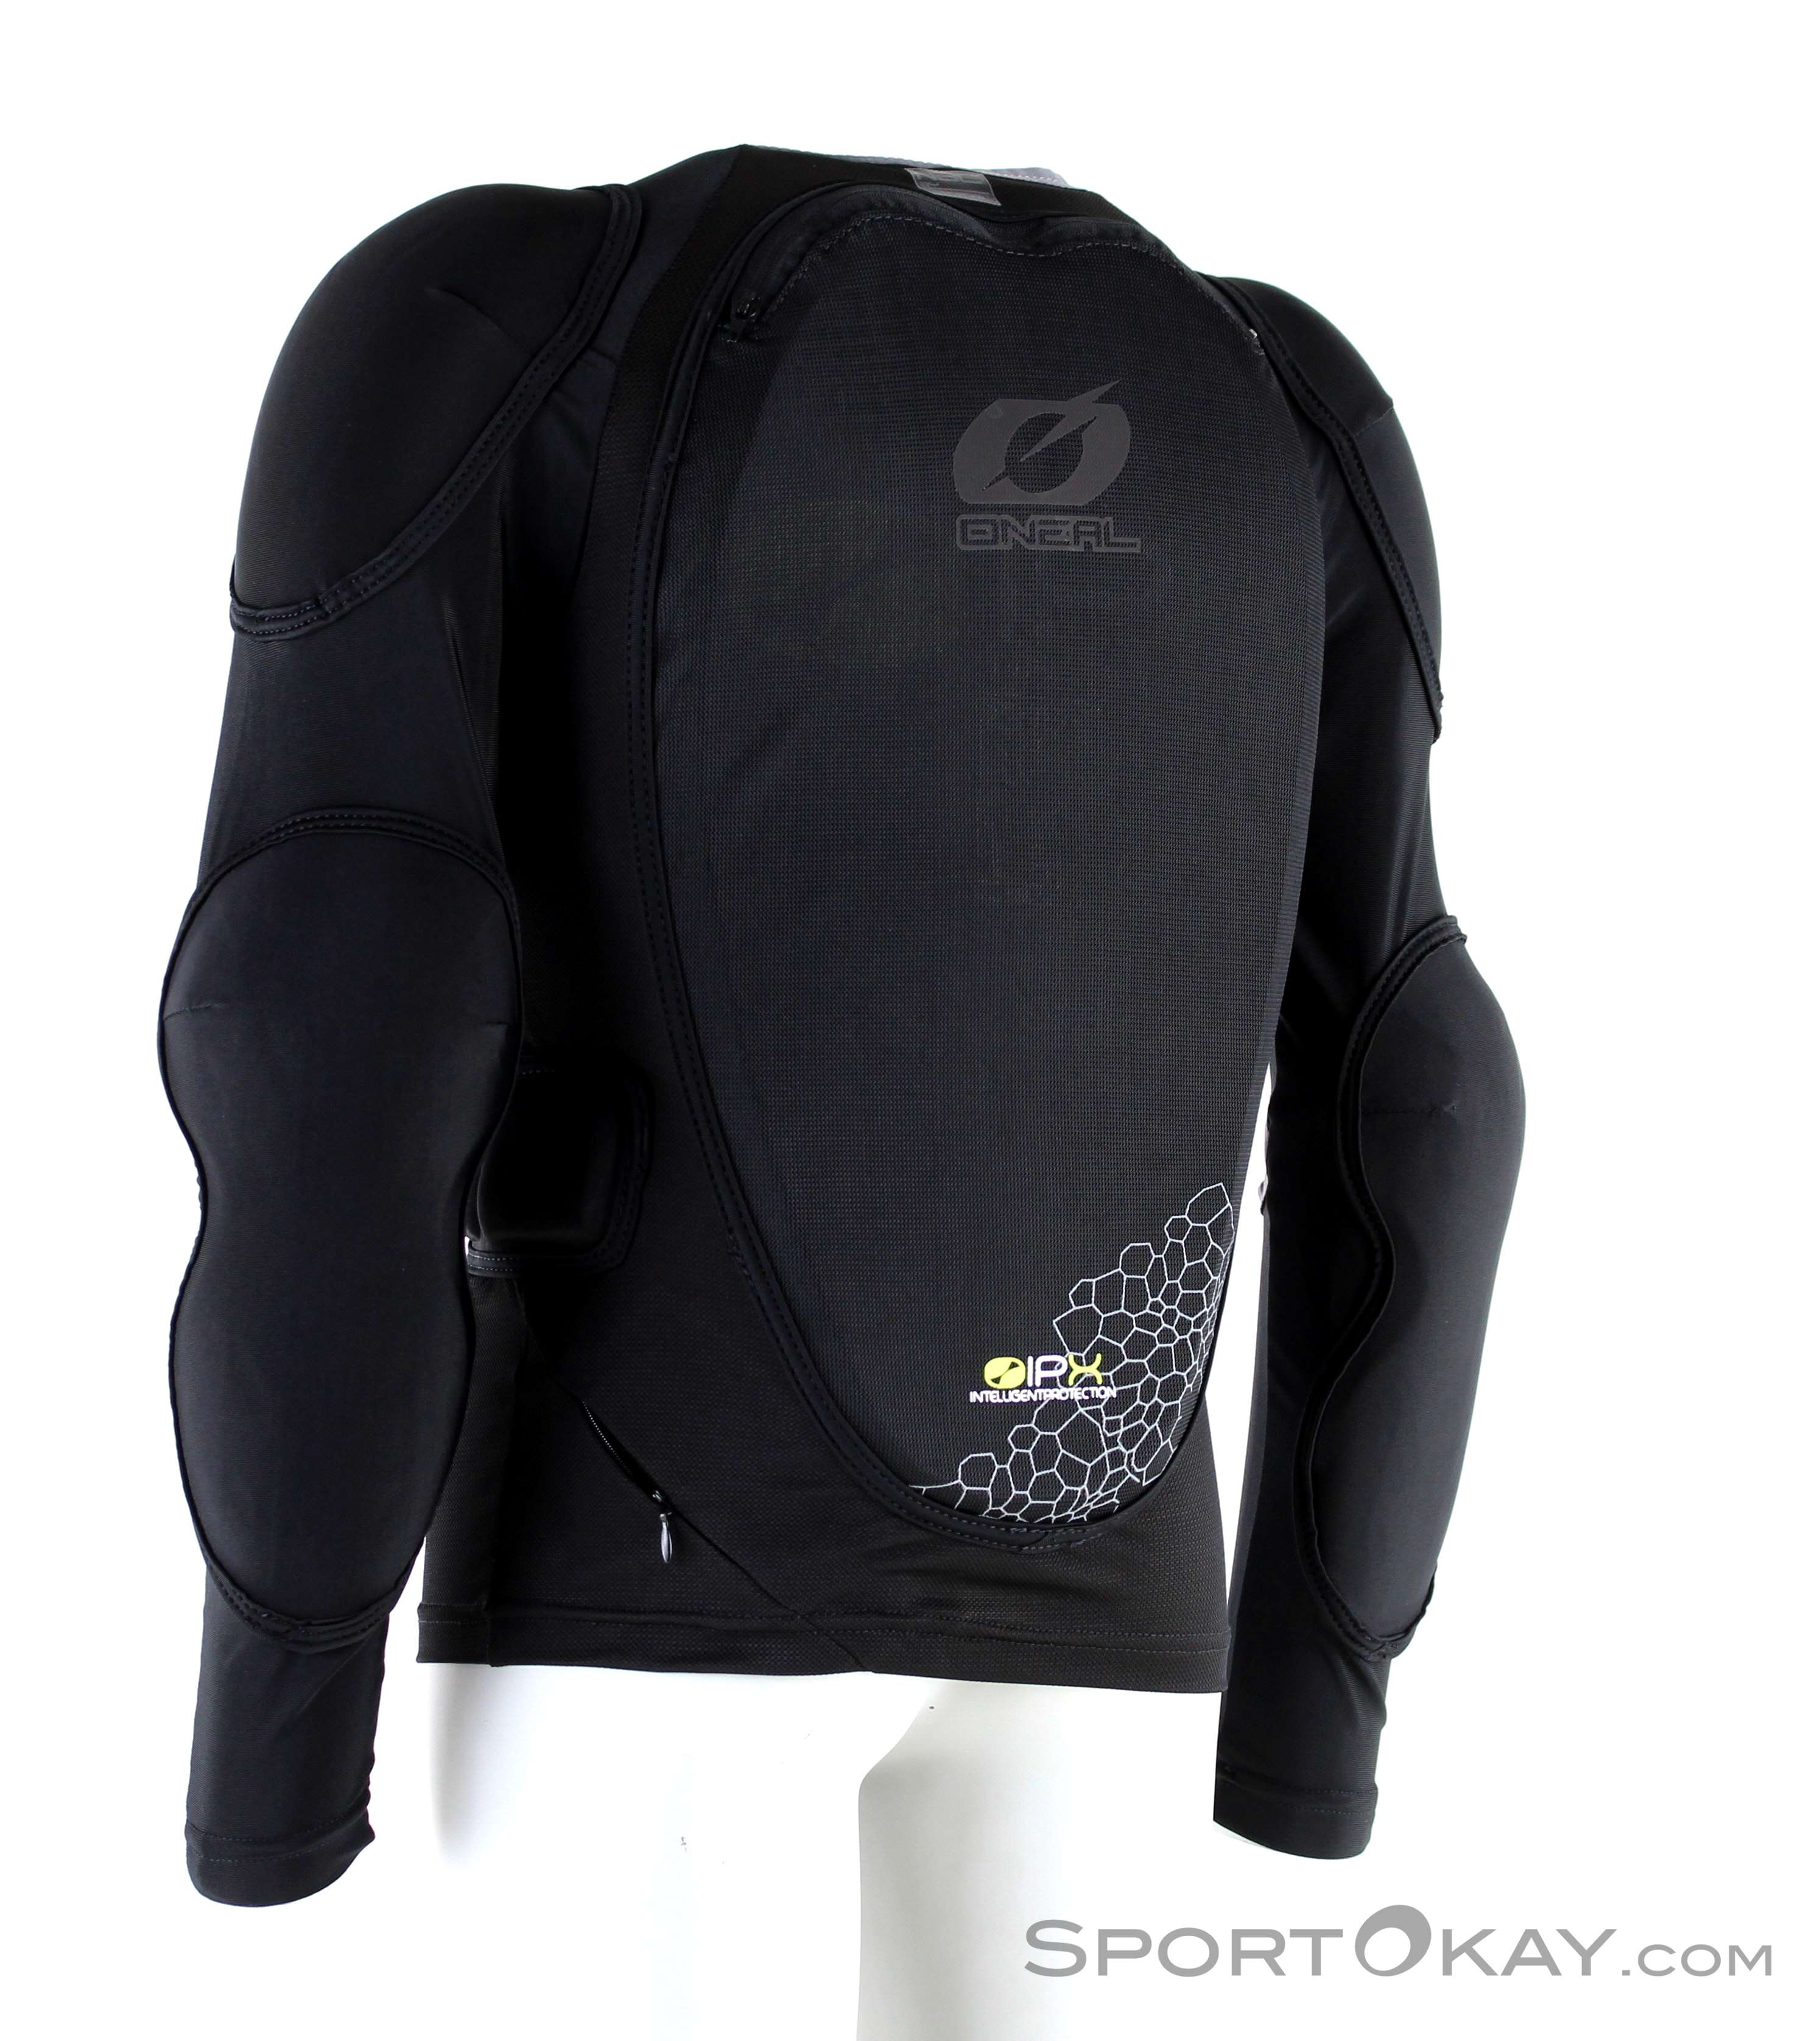 Oneal BP Negro 2019 Protectores